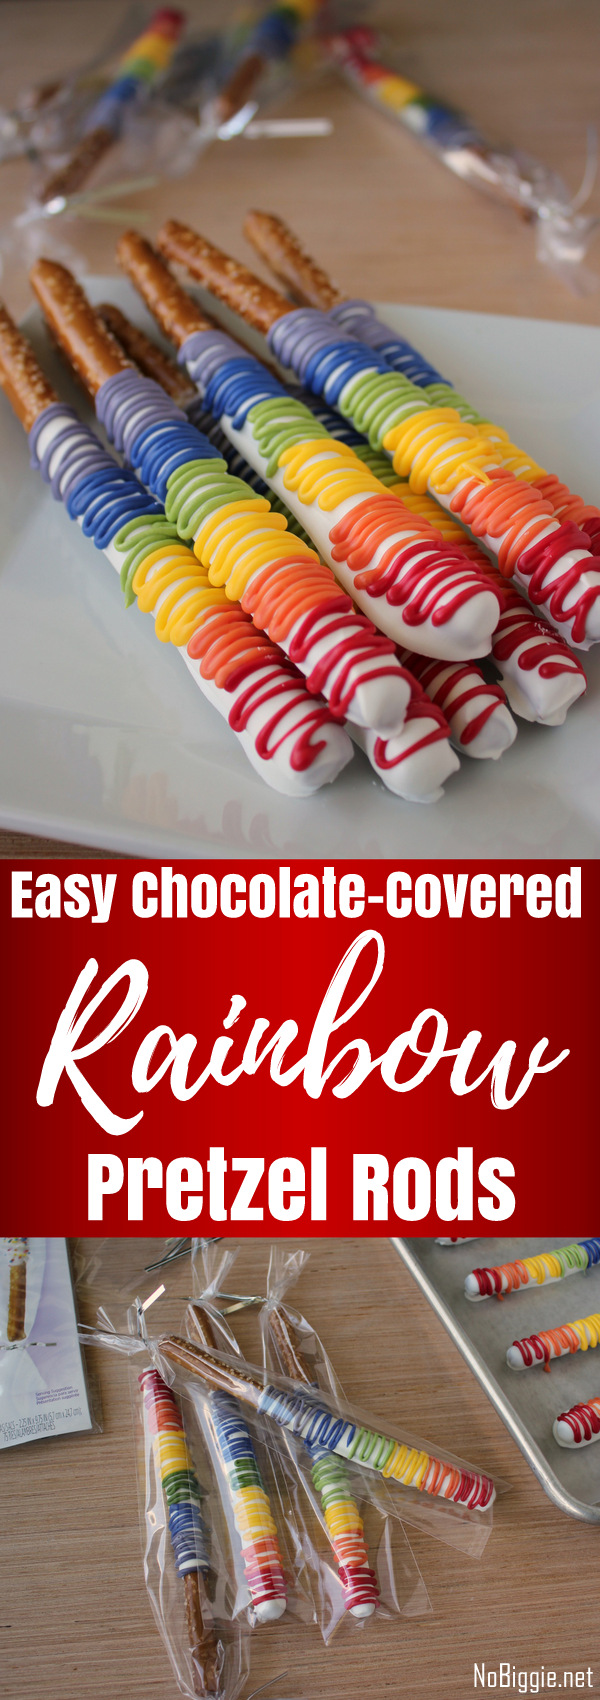 Chocolate-Covered Rainbow Pretzel Rods - Inspired by Rainbow Dash and perfect for a splash of magic. #chocolatecoveredpretzels #rainbowpretzels #mylittlepony #pretzels #rainbowdash